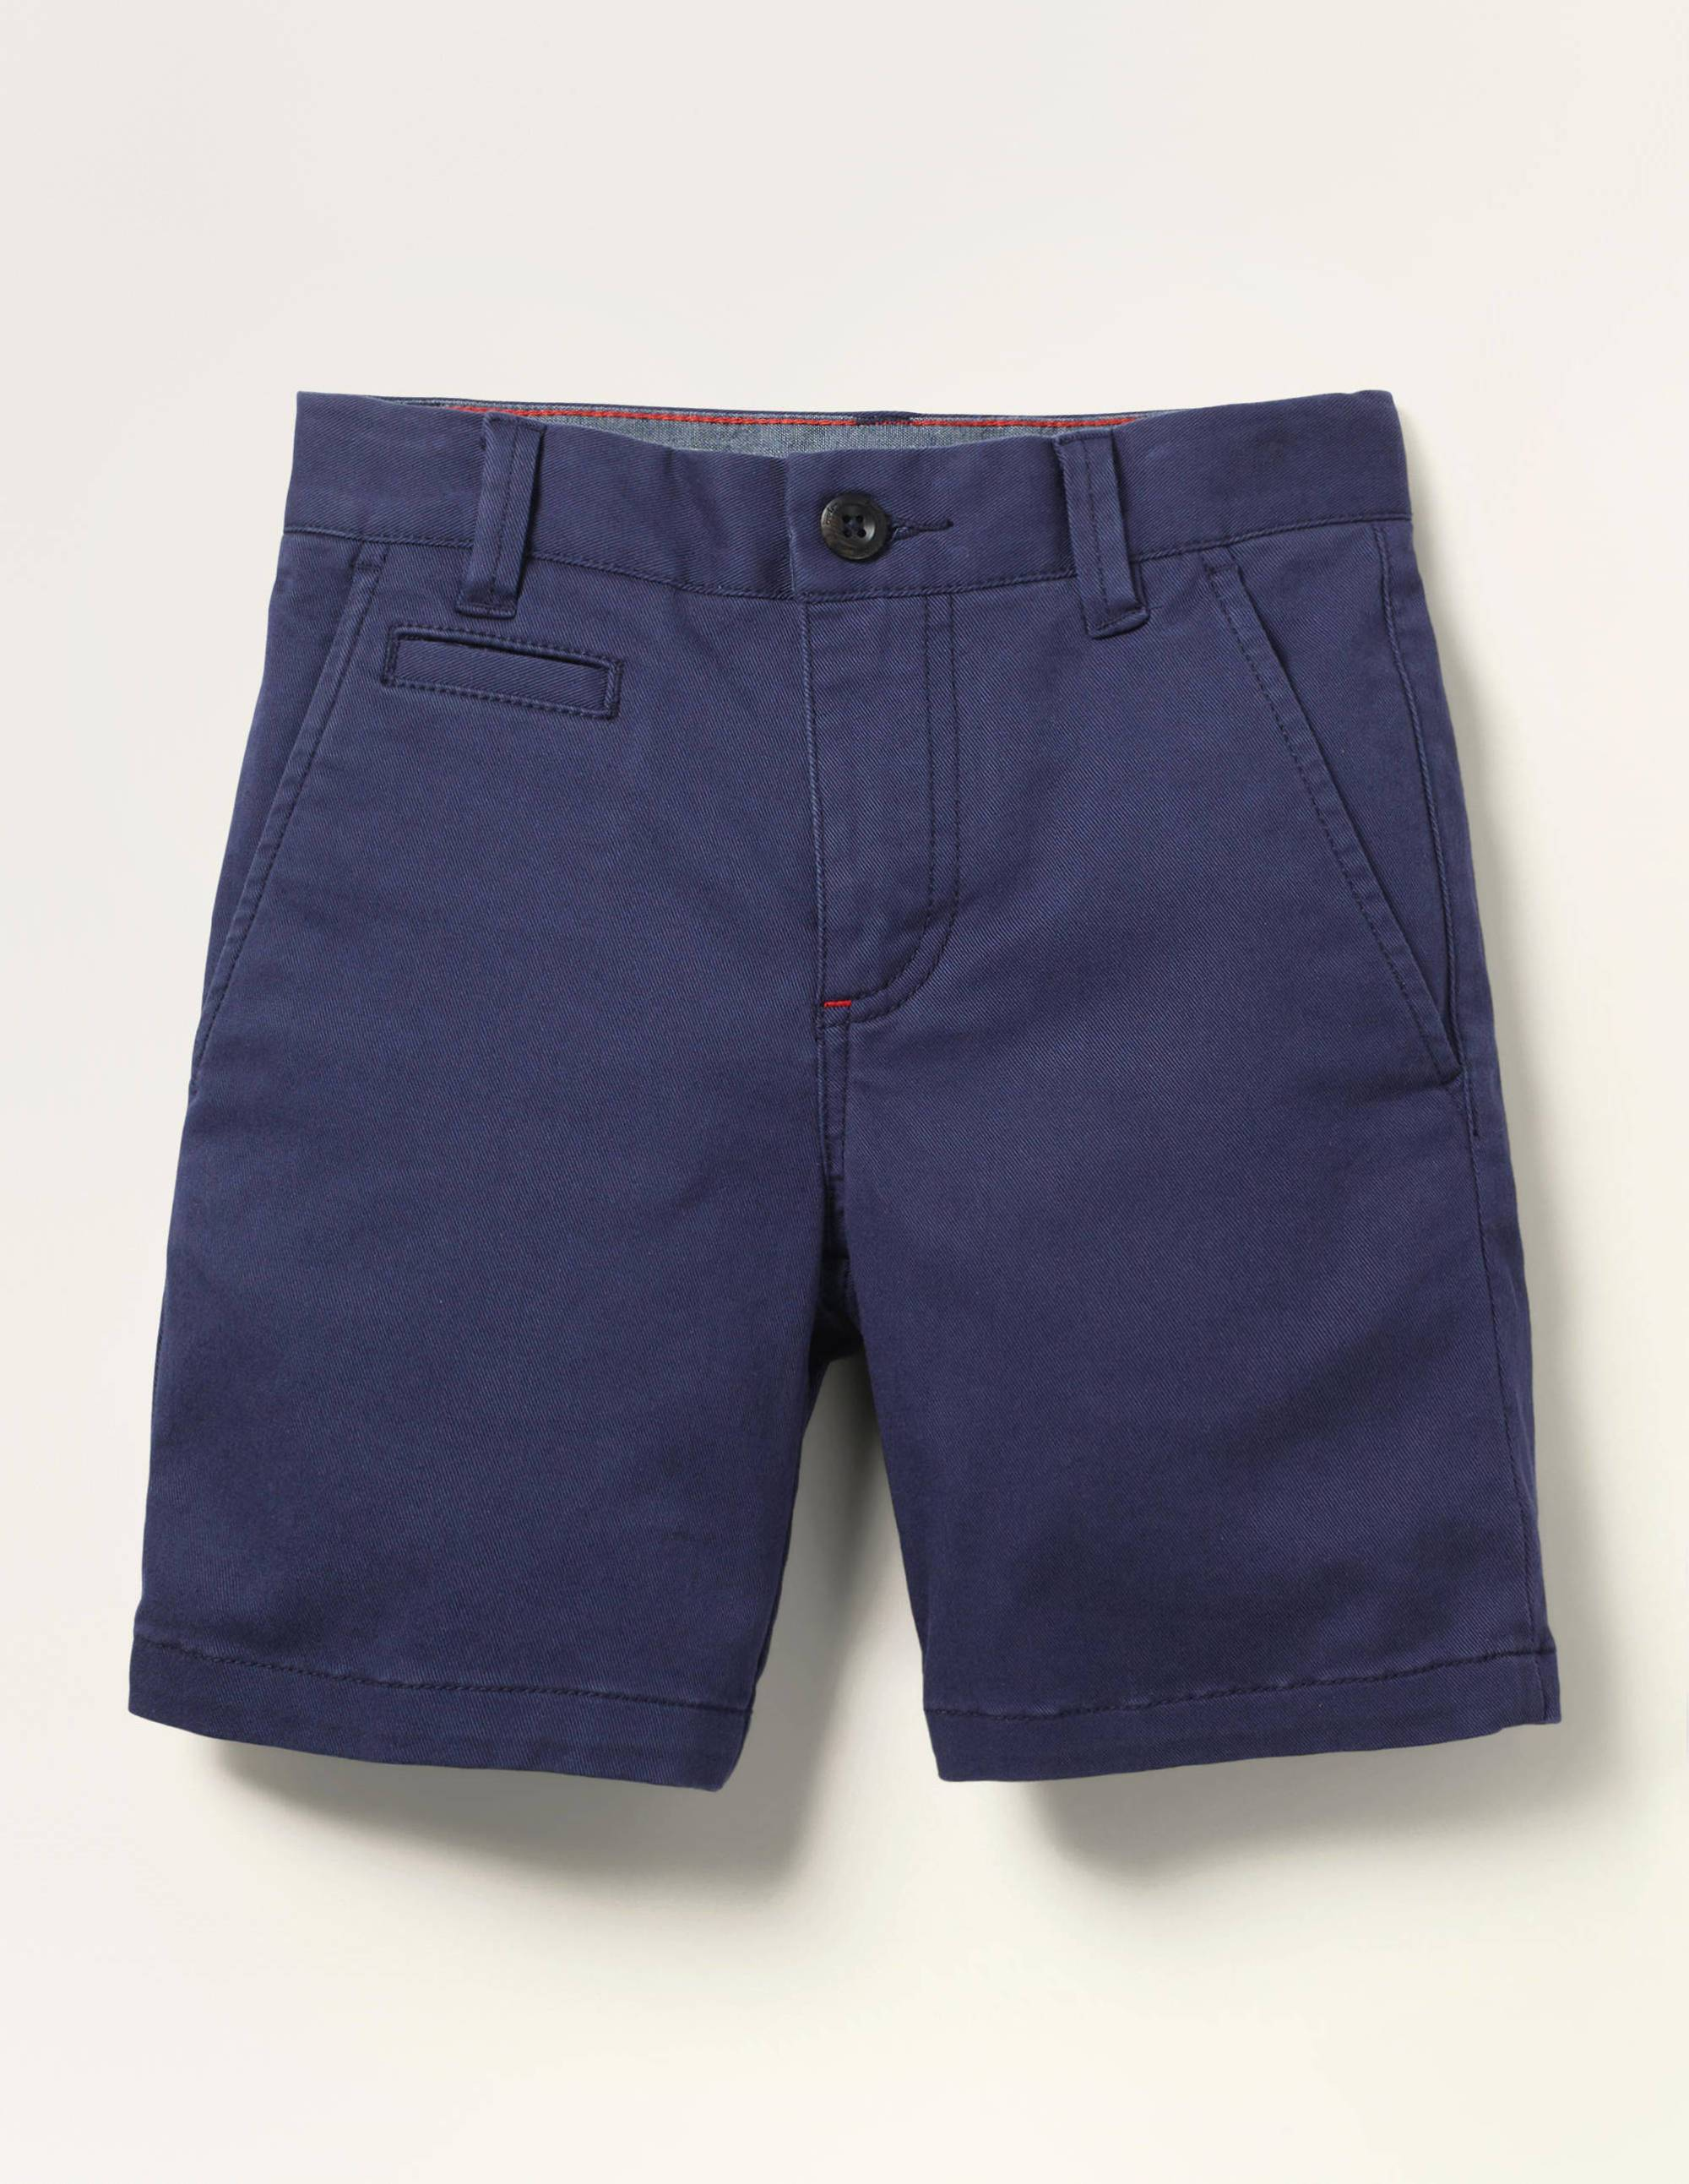 Mini Short chino NAV Femme Boden, Blue - 7a